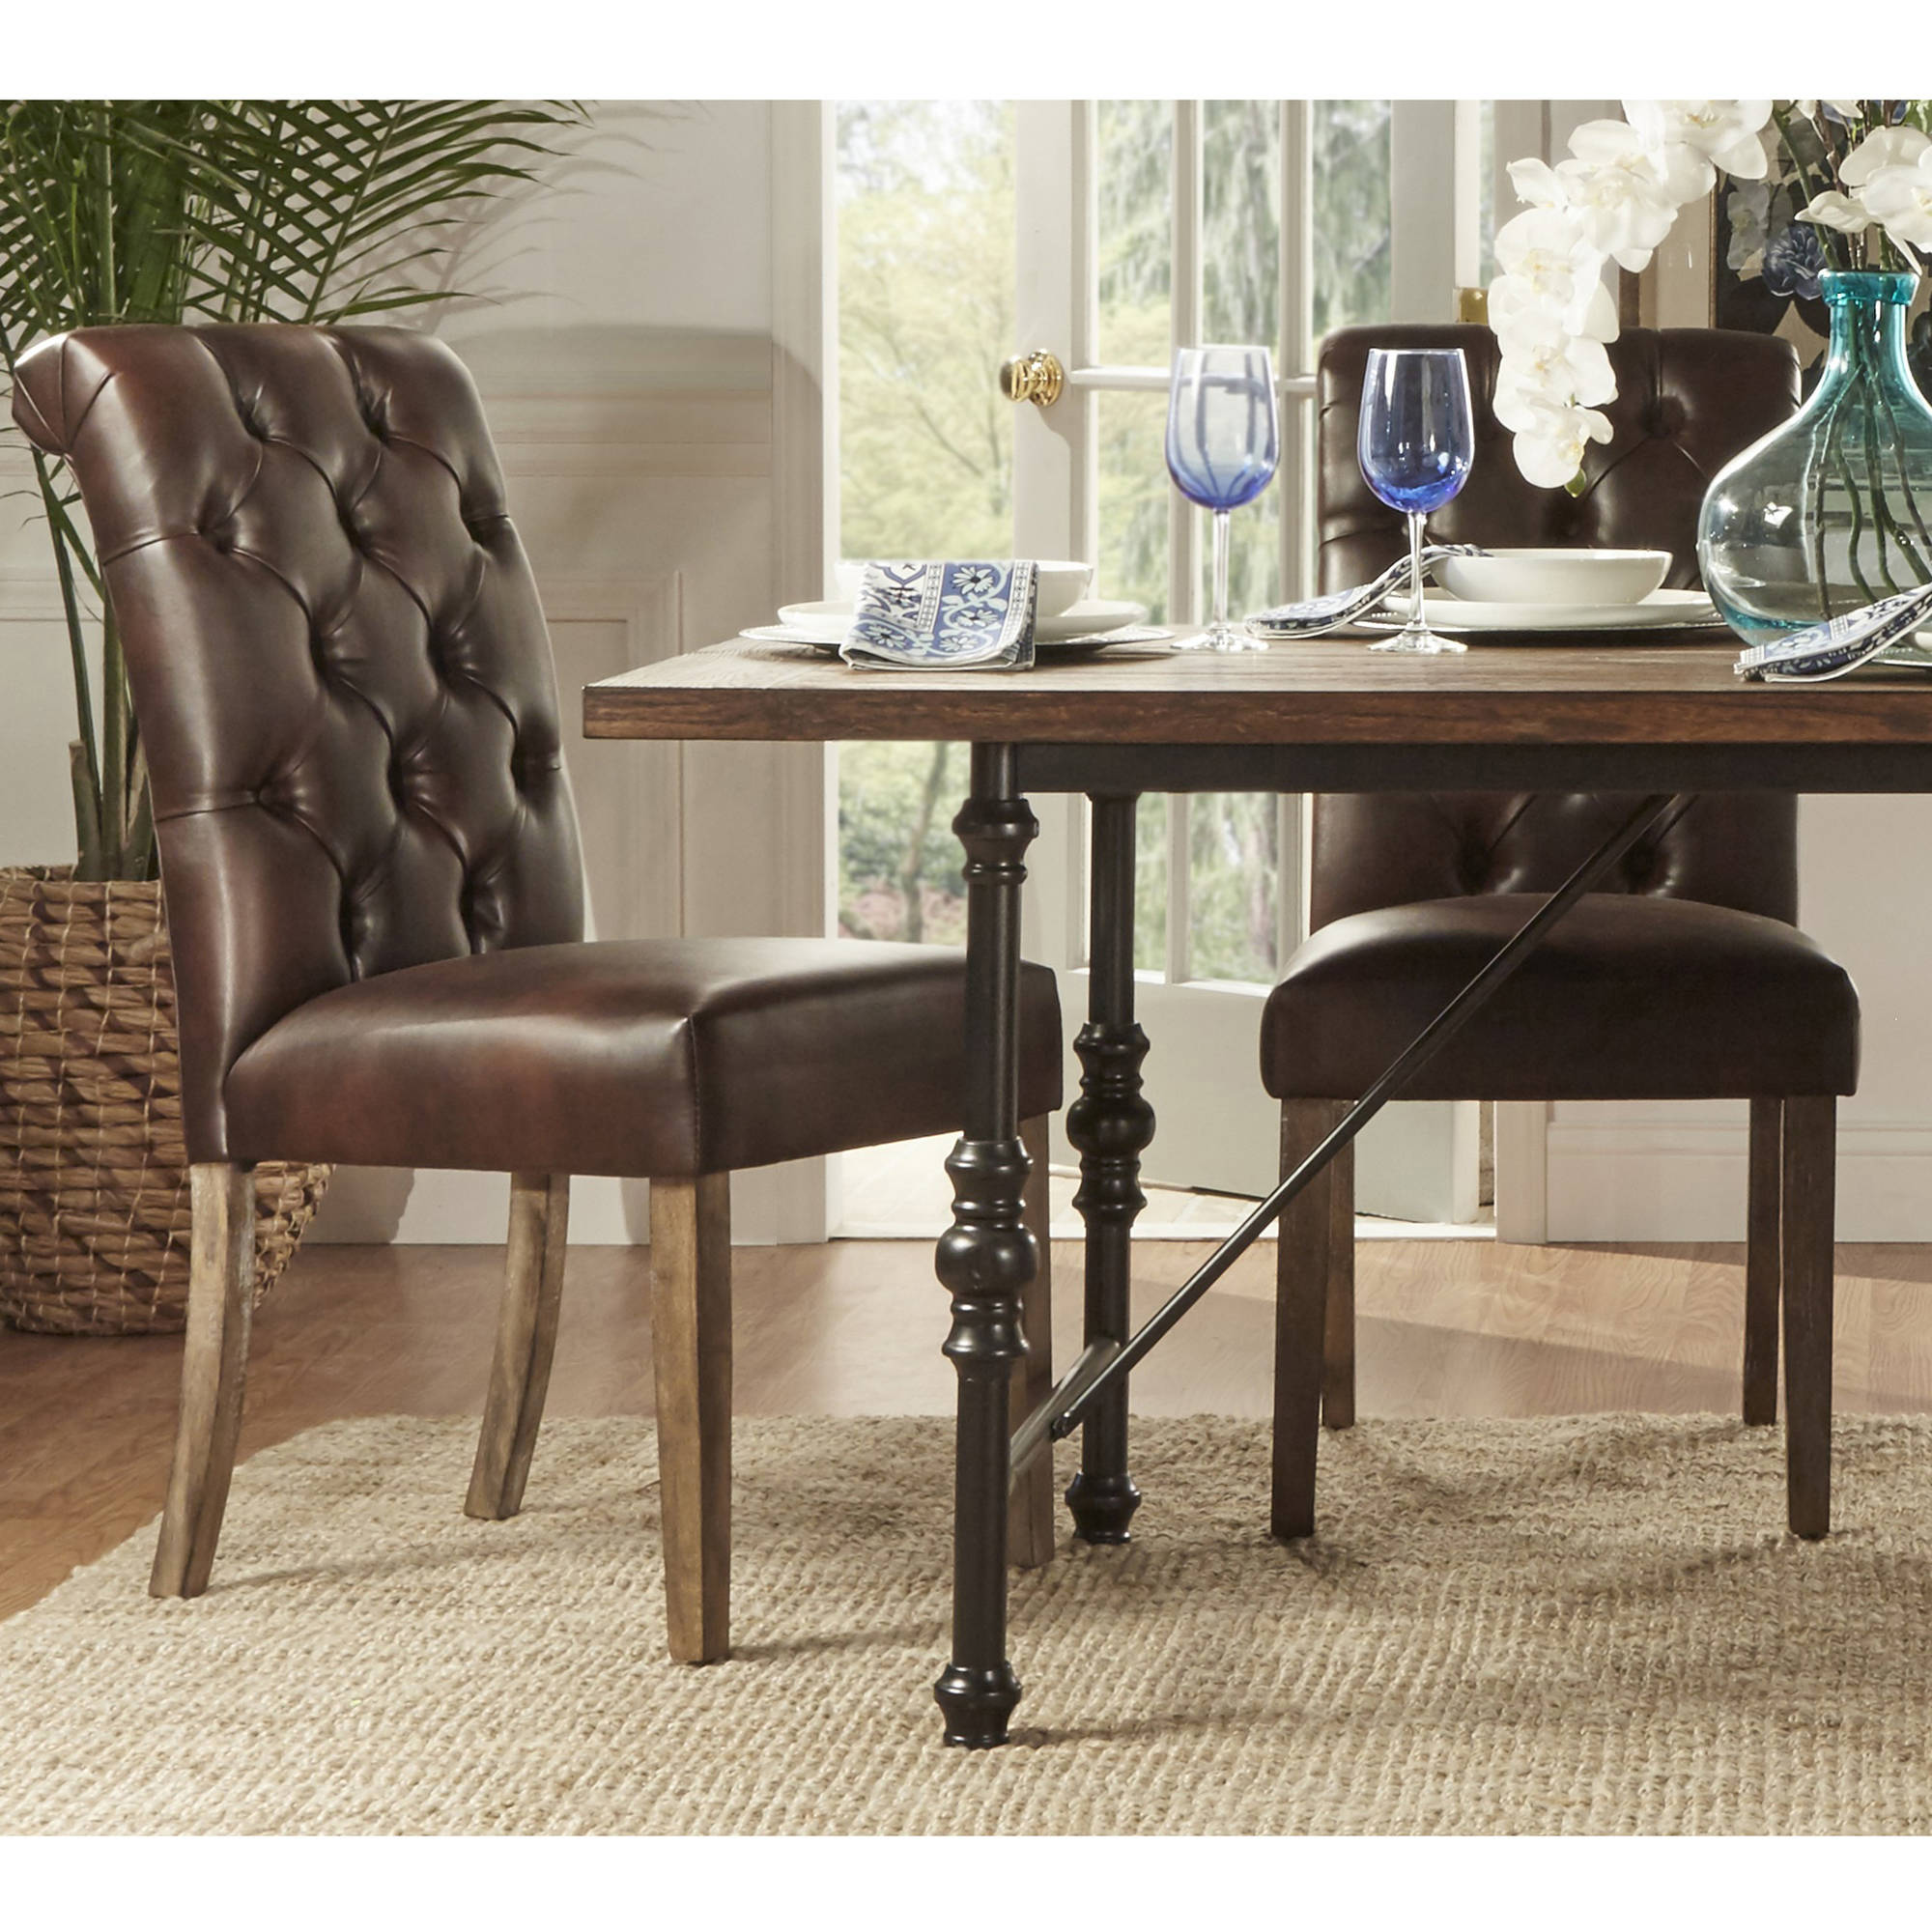 Weston Home Rolled Top Tufted Dining Chair, Set of 2, Multiple Colors